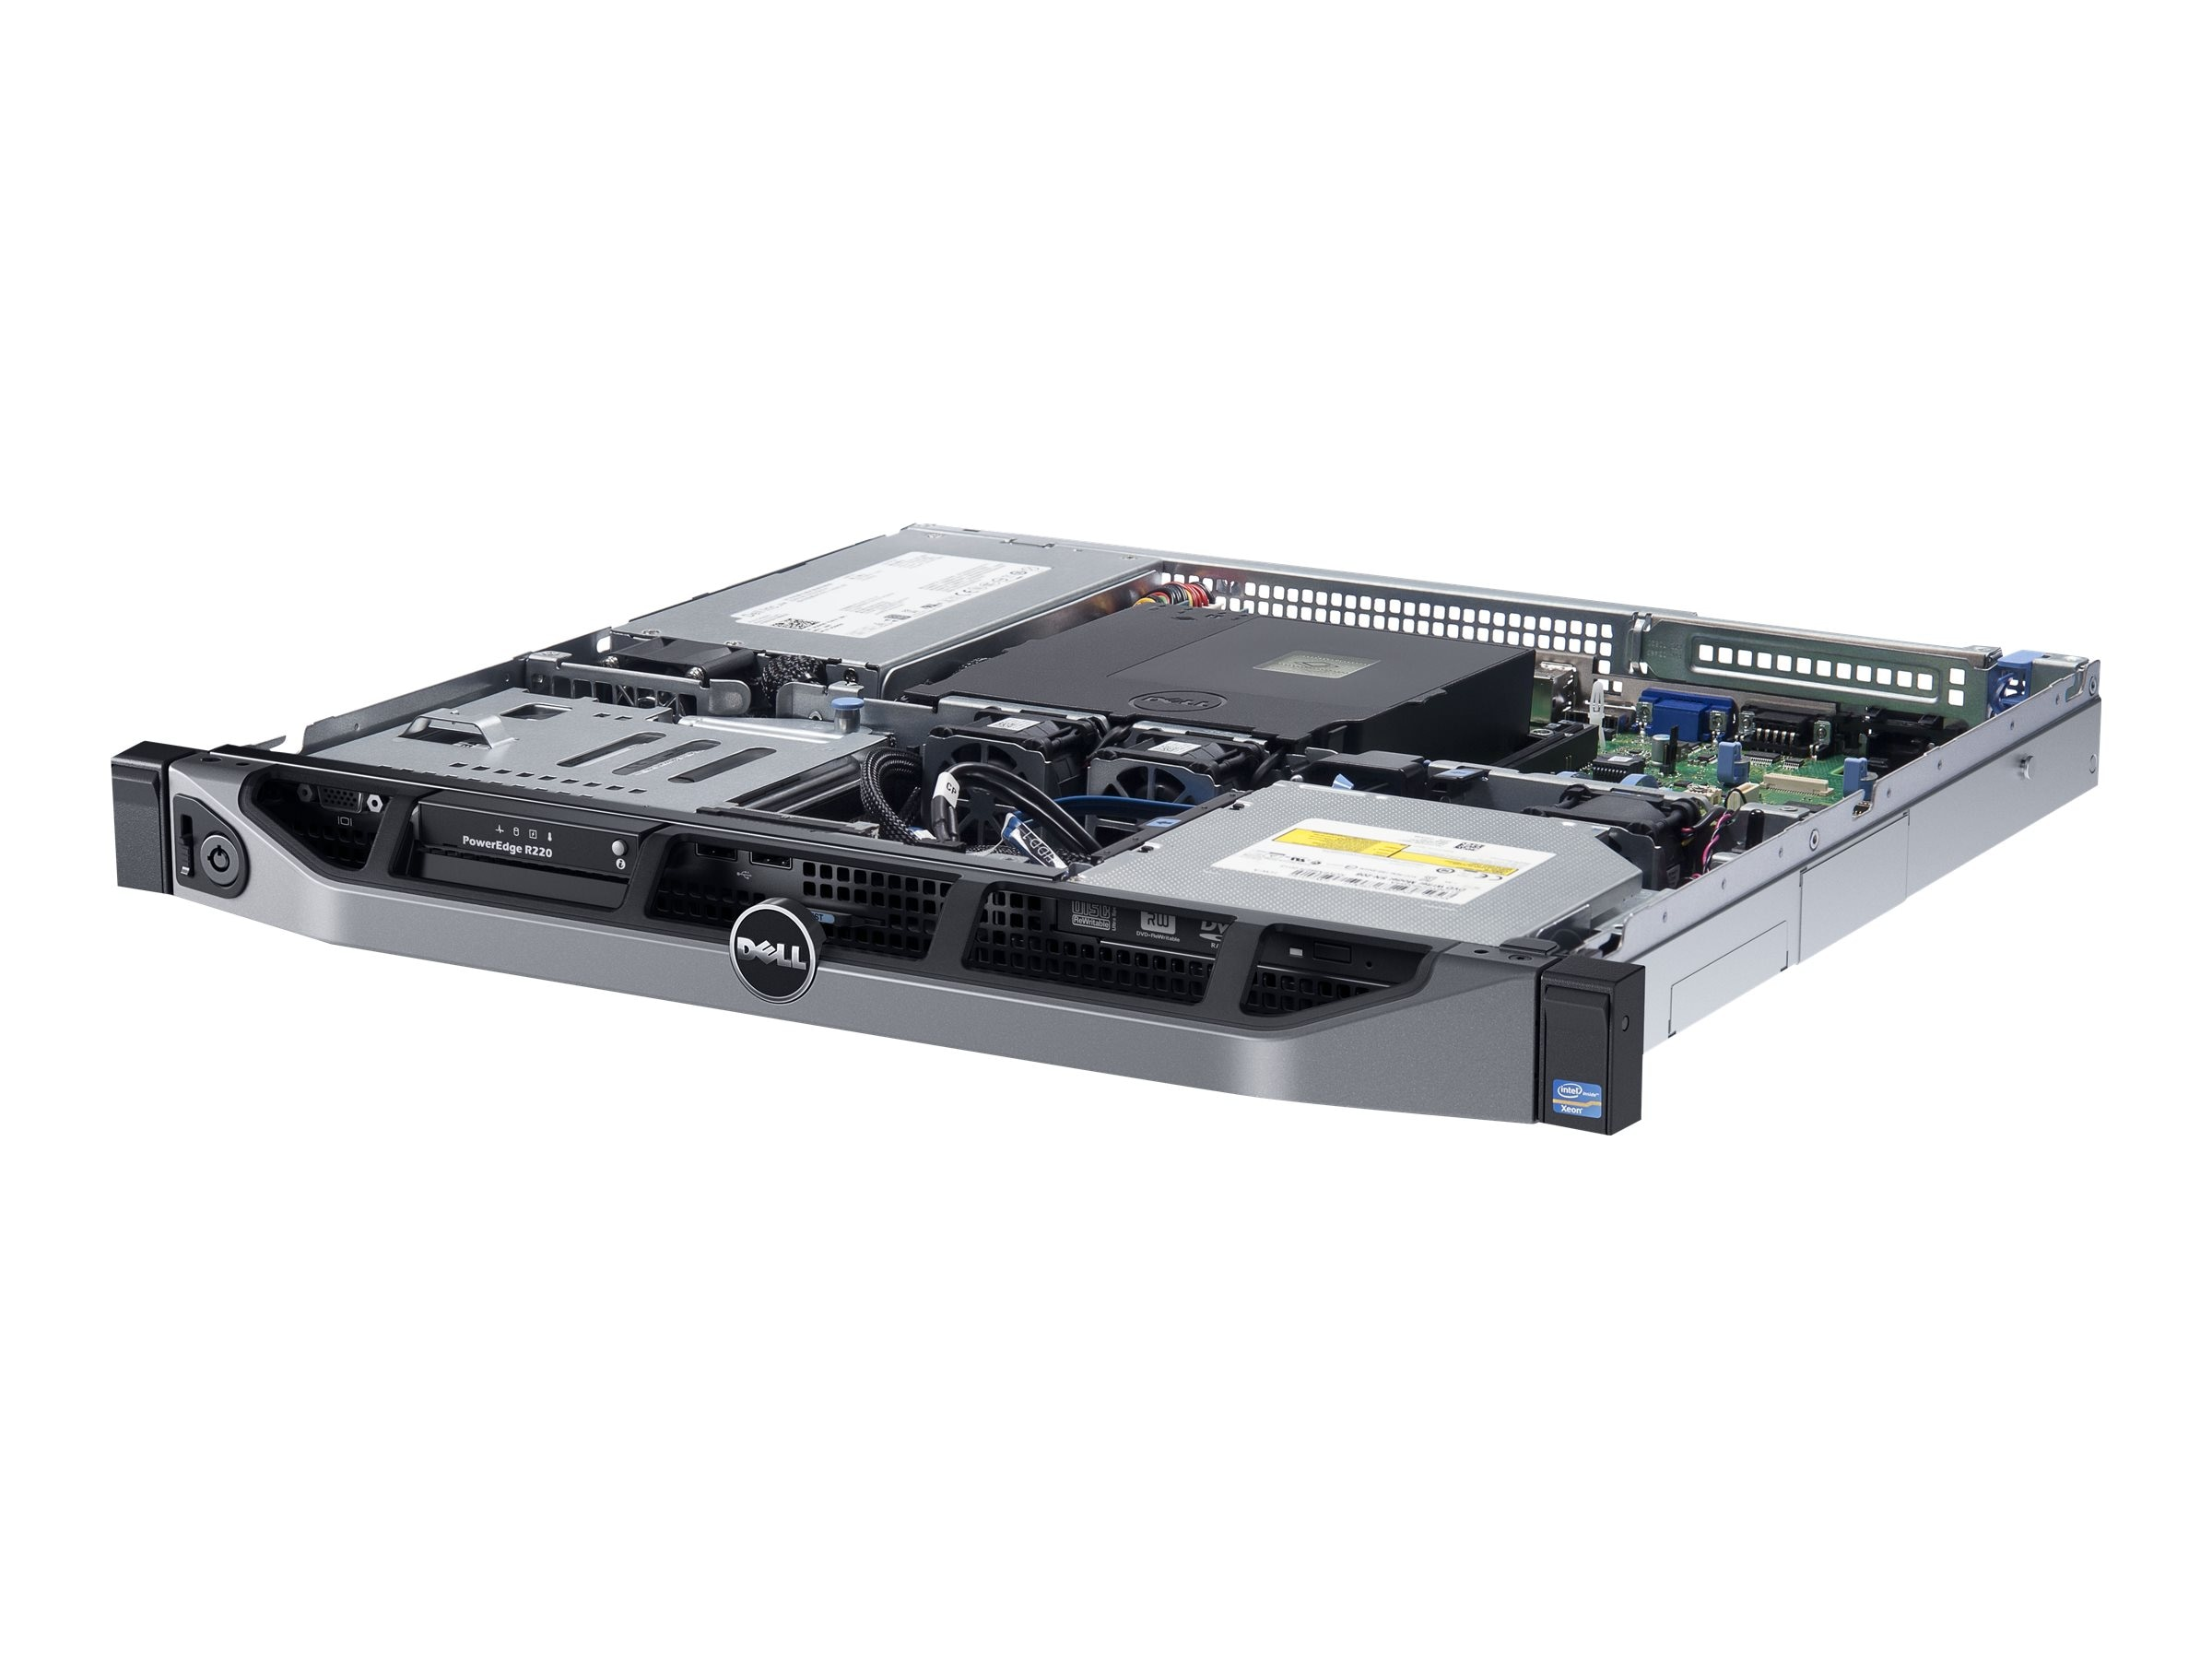 Dell PowerEdge R220 1U RM Xeon QC E3-1220 v3 3.1GHz 8GB 1x1TB SATA 2x3.5 DC Bays DVD 2xGbE 250W, 463-6116, 21404565, Servers